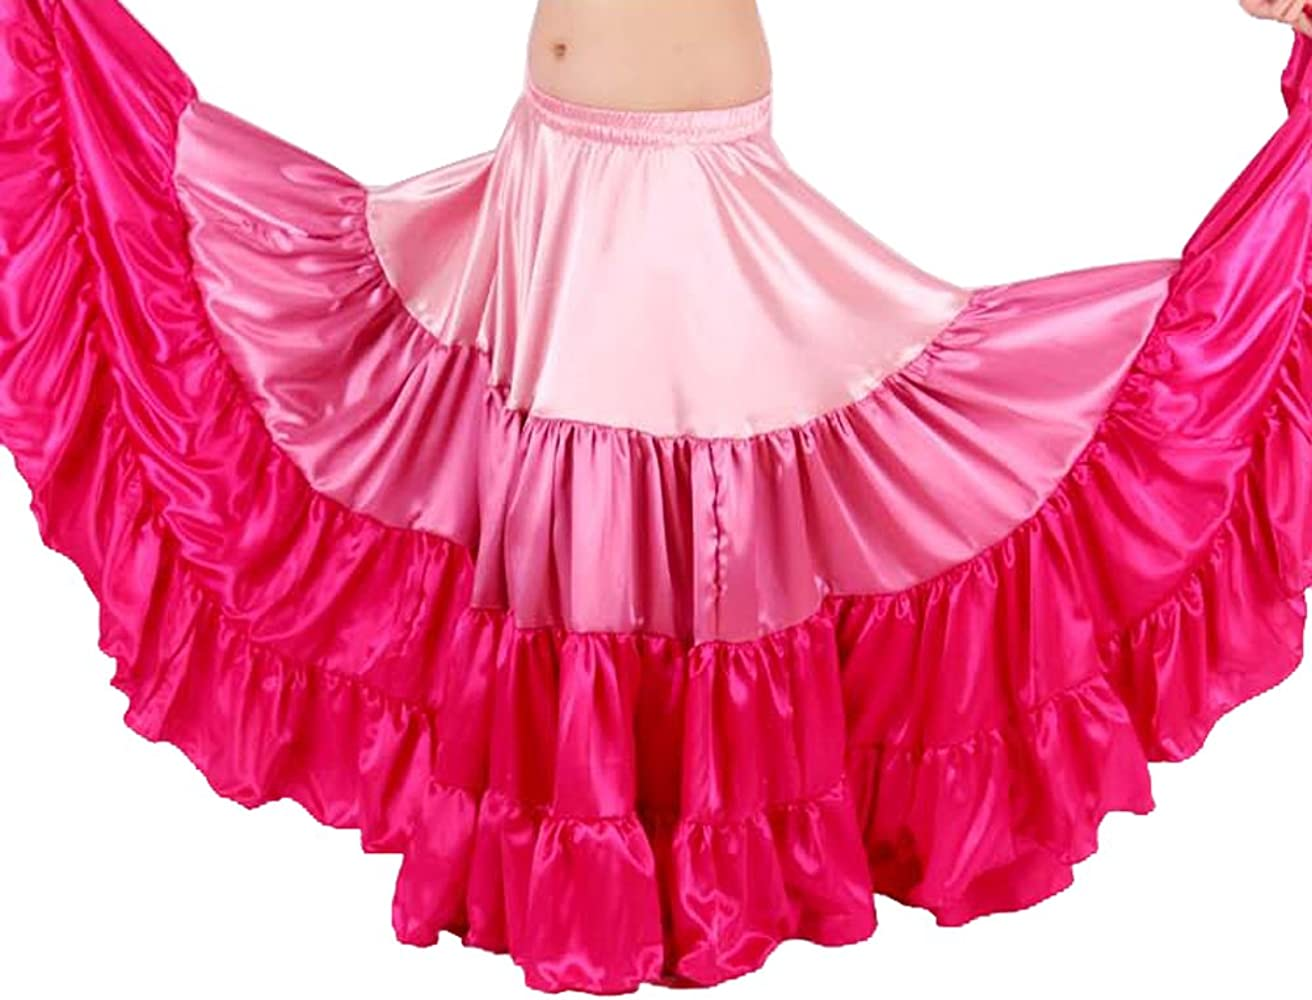 Satin Gypsy 25 Yard Skirt form India for American Tribal Style Belly Dancing